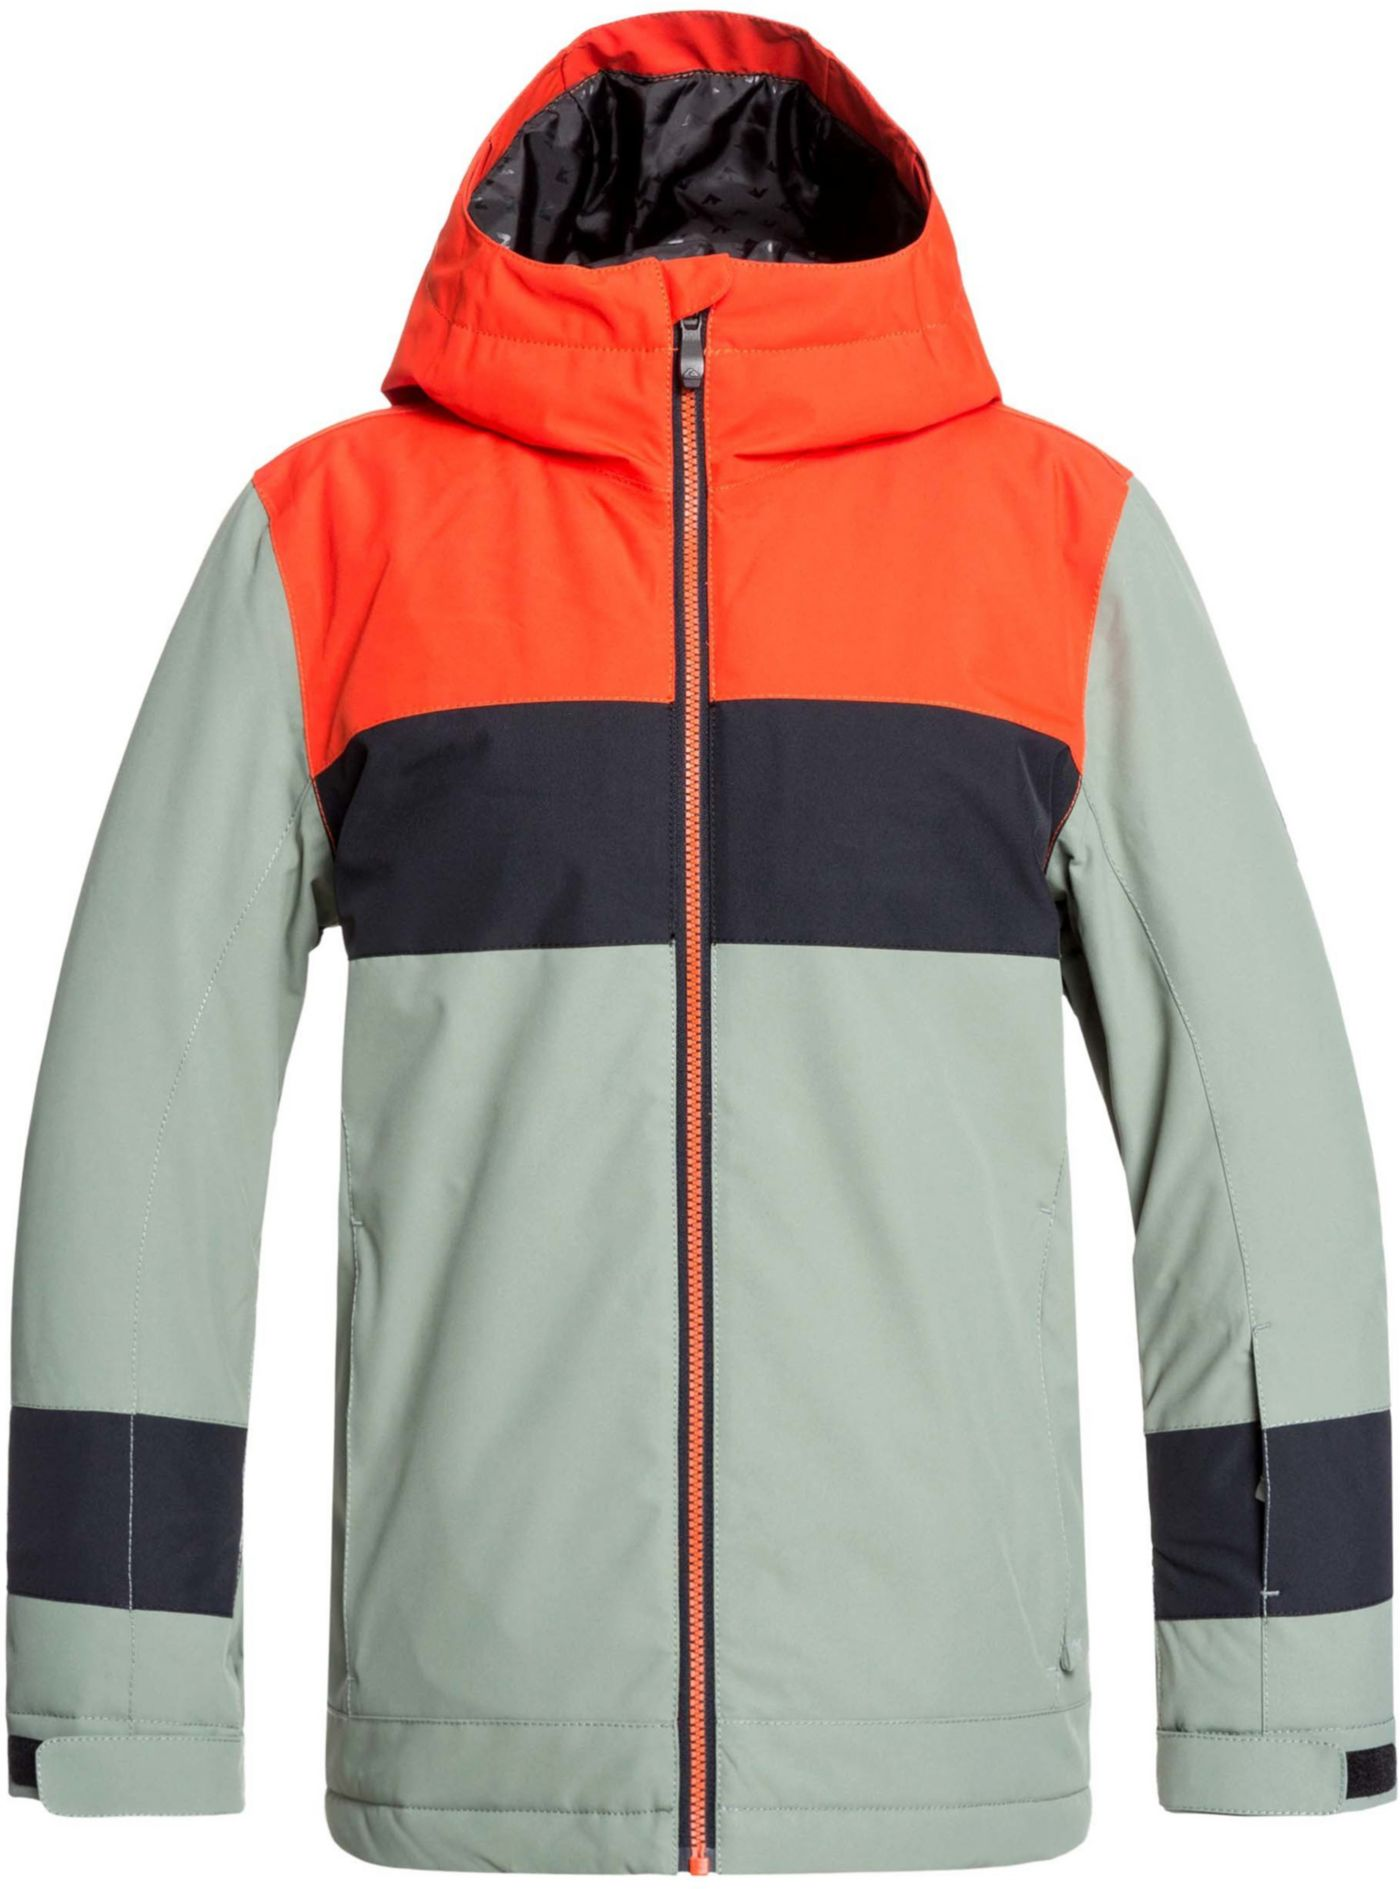 Quiksilver Boys' Sycamore Insulated Snow Jacket